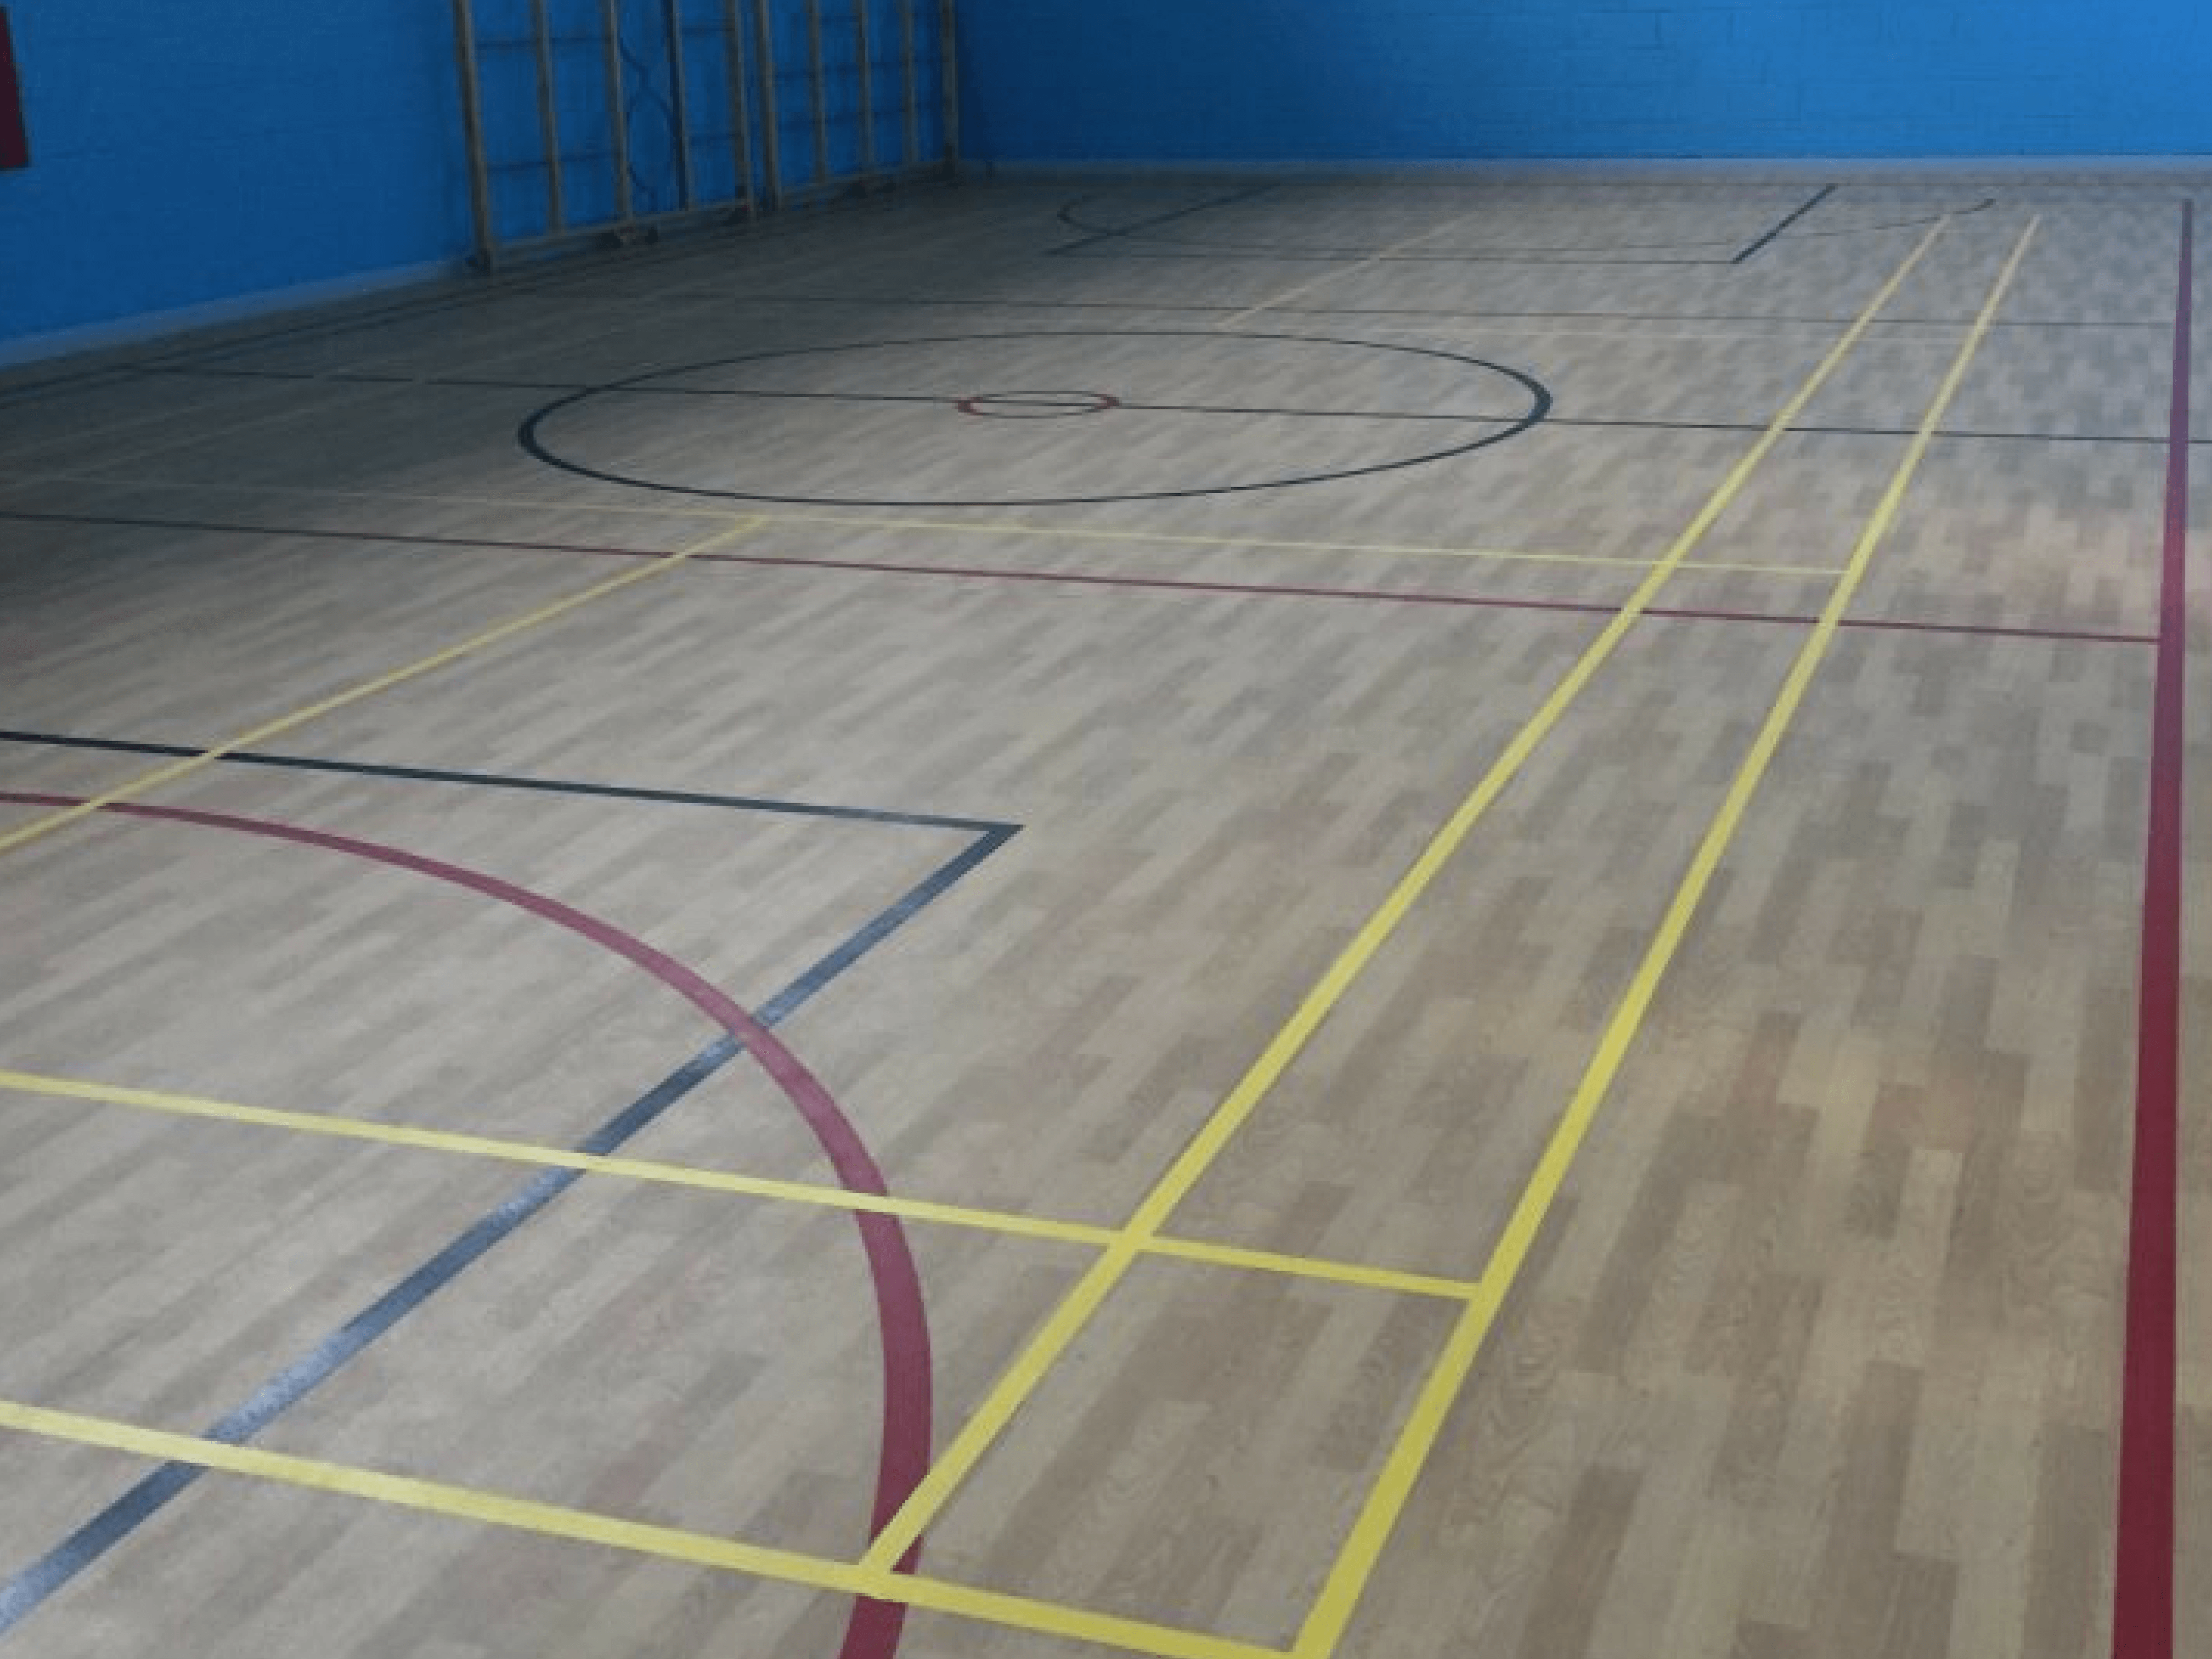 sidlaw gym hall wooden flooring